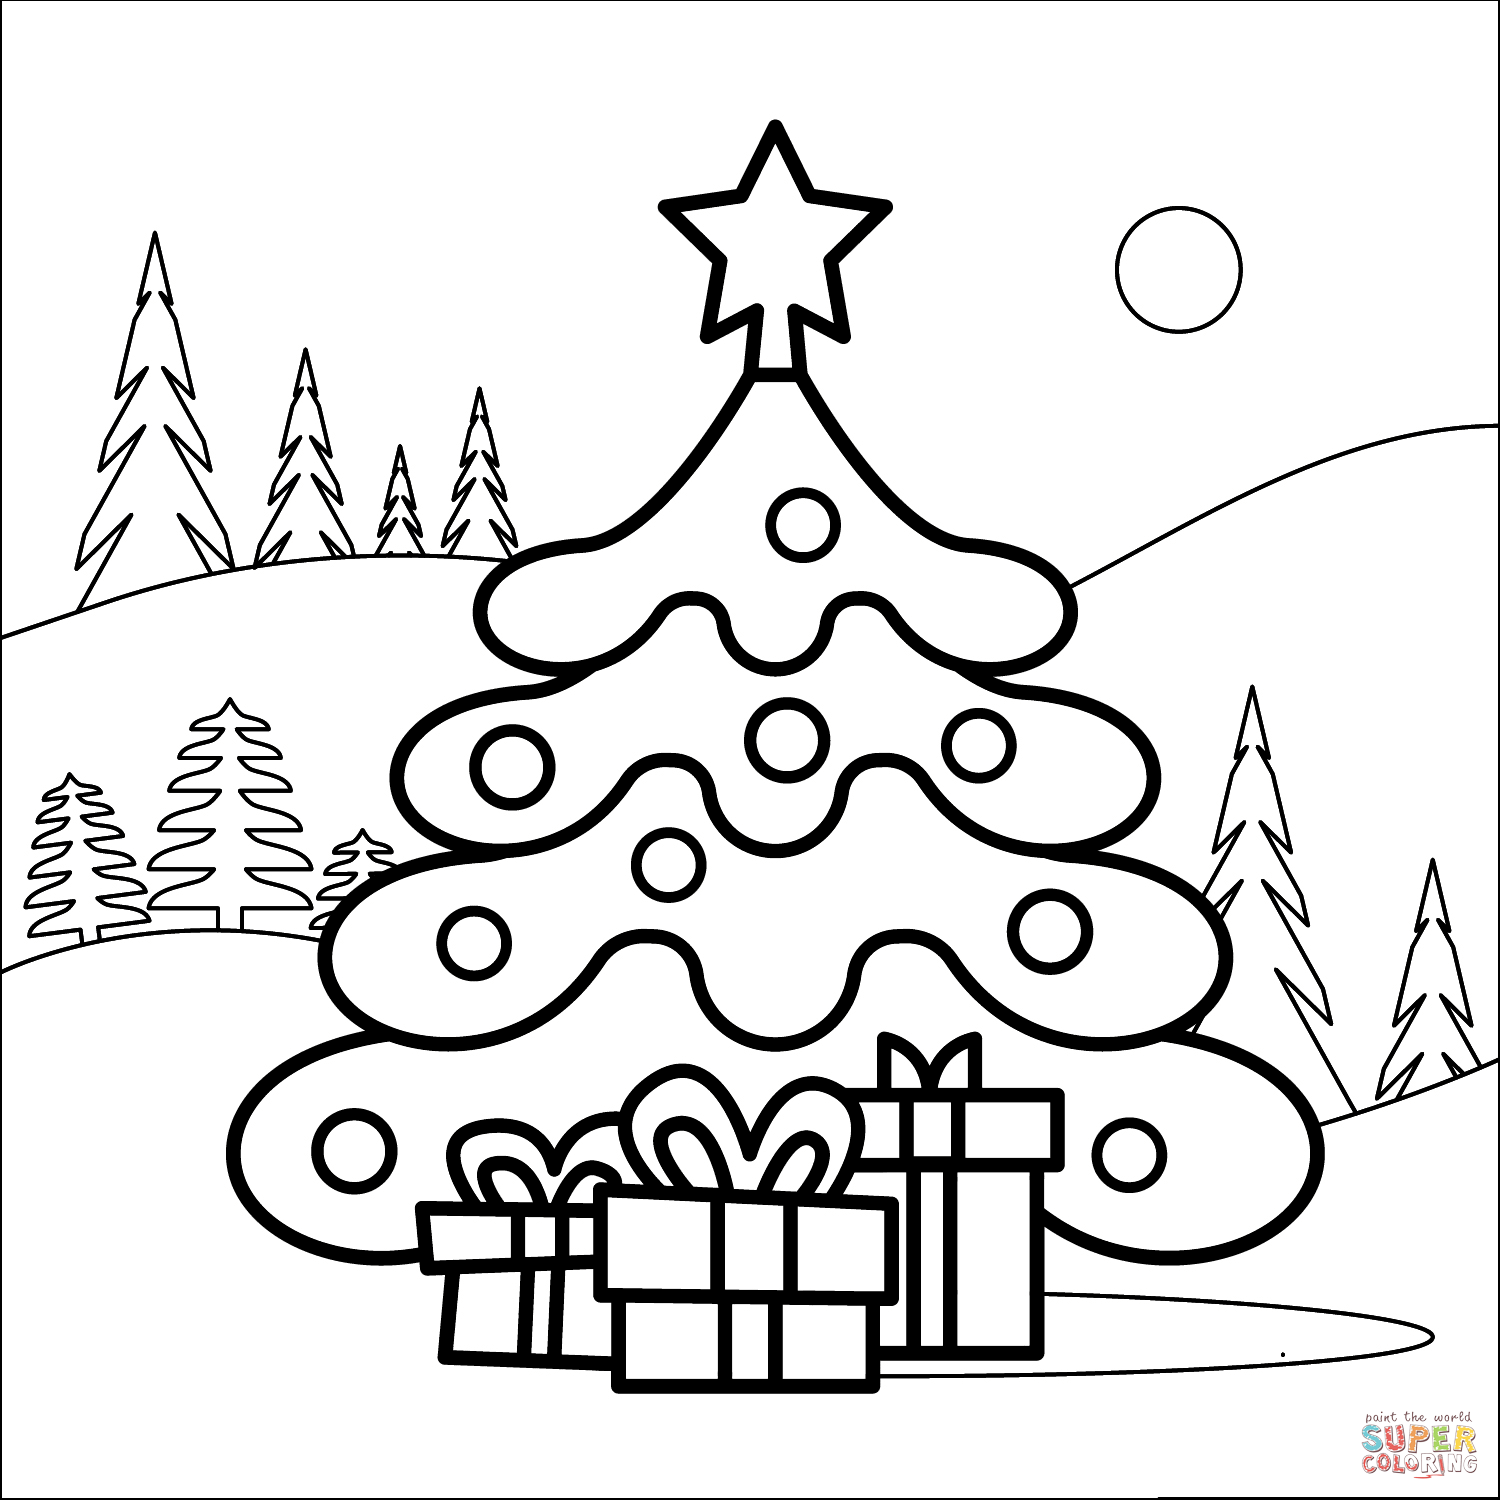 coloring pages of christmas trees christmas tree coloring pages for childrens printable for free of pages trees christmas coloring